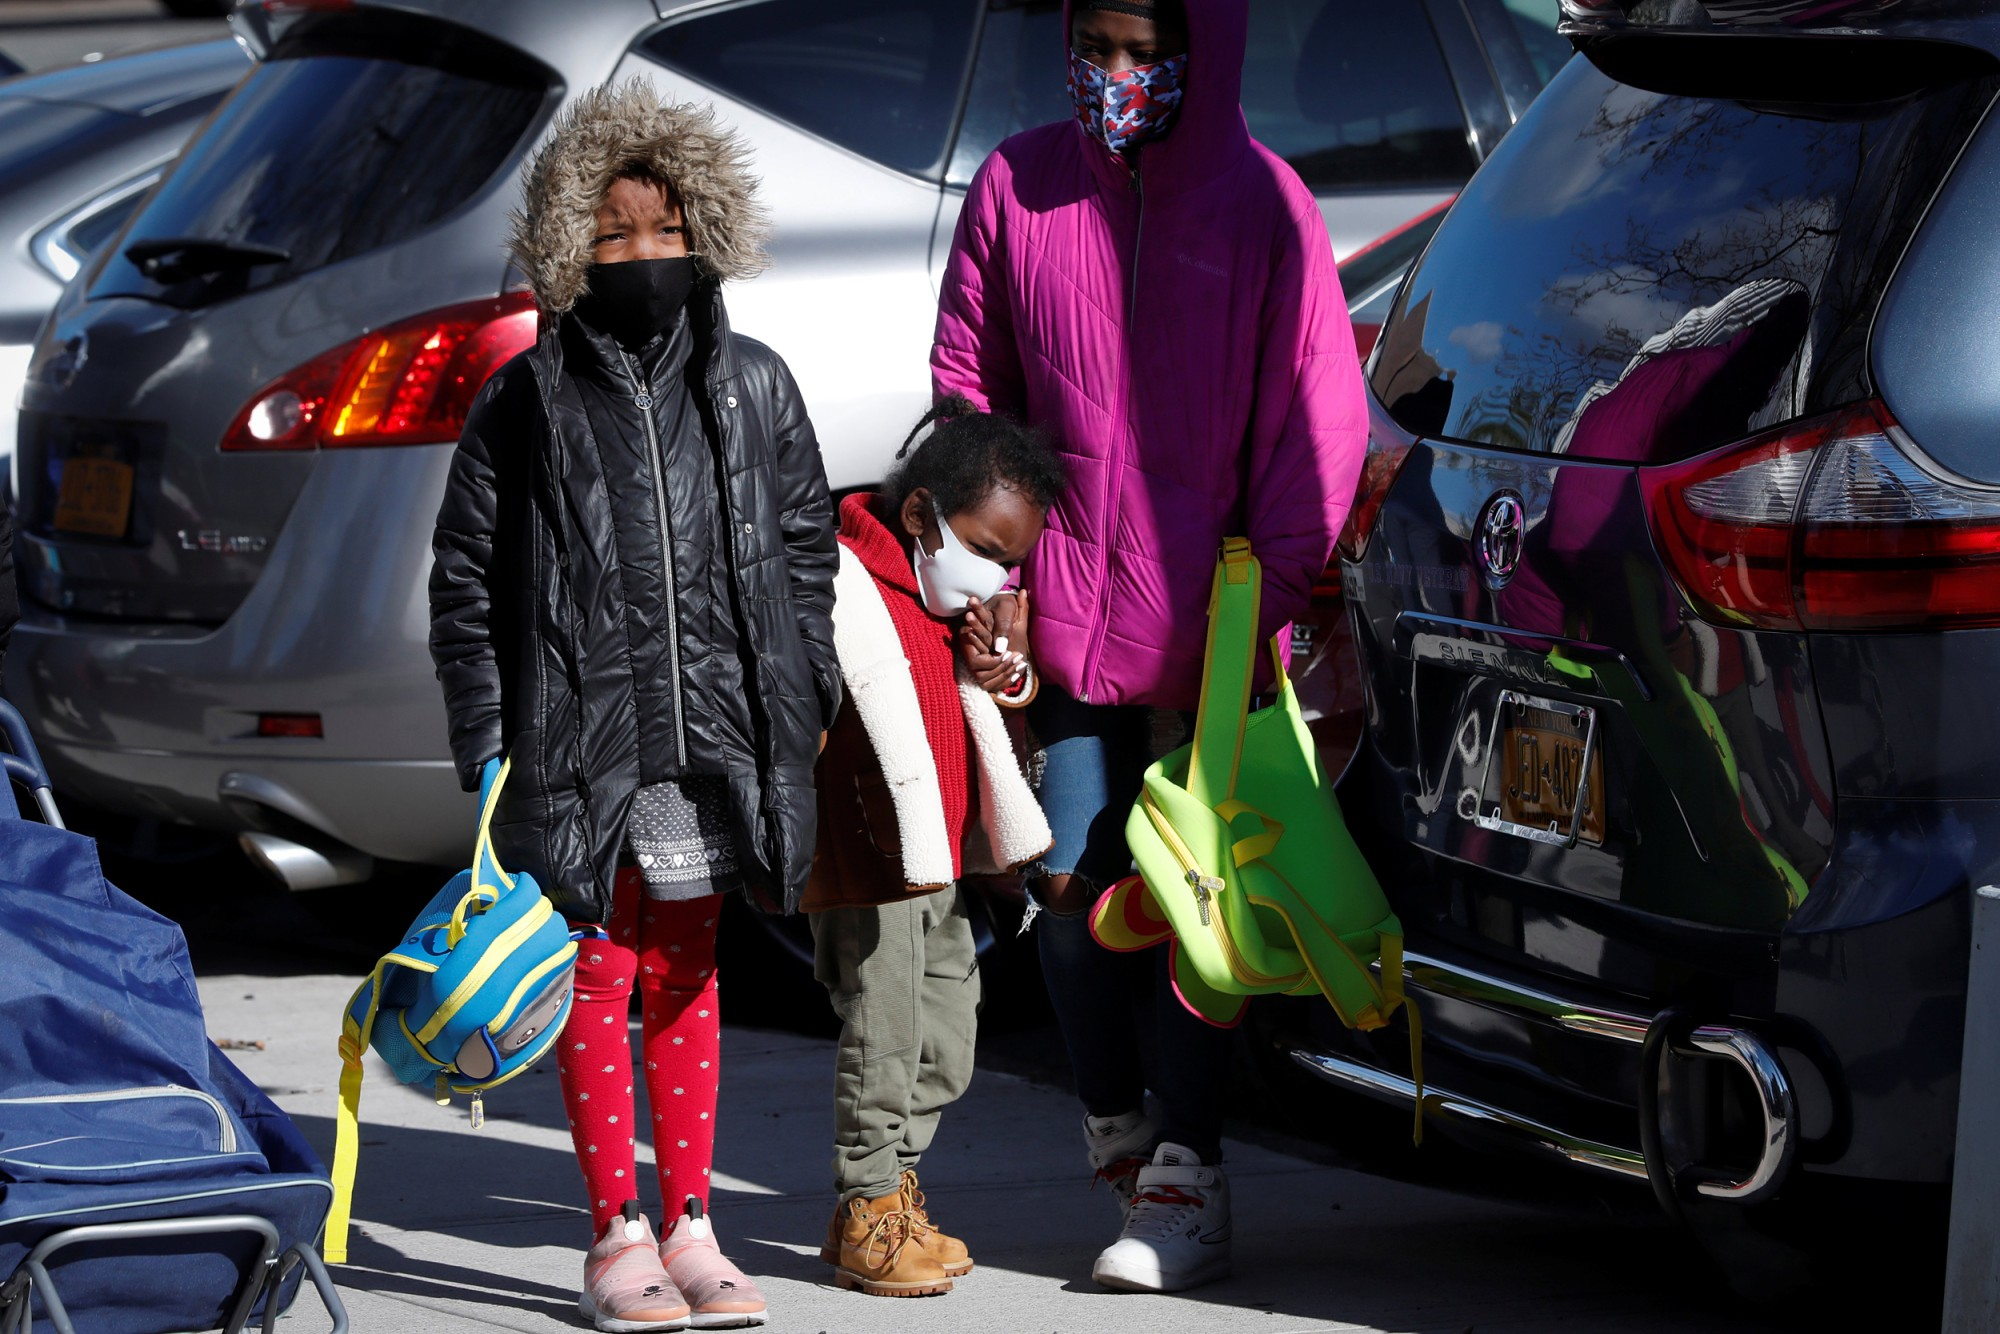 Children wait in line to pick up packages of free food during a food rescue operation run by City Harvest during the outbreak of the coronavirus in the Bronx, N.Y. on April 22, 2020.Mike Segar / Reuters